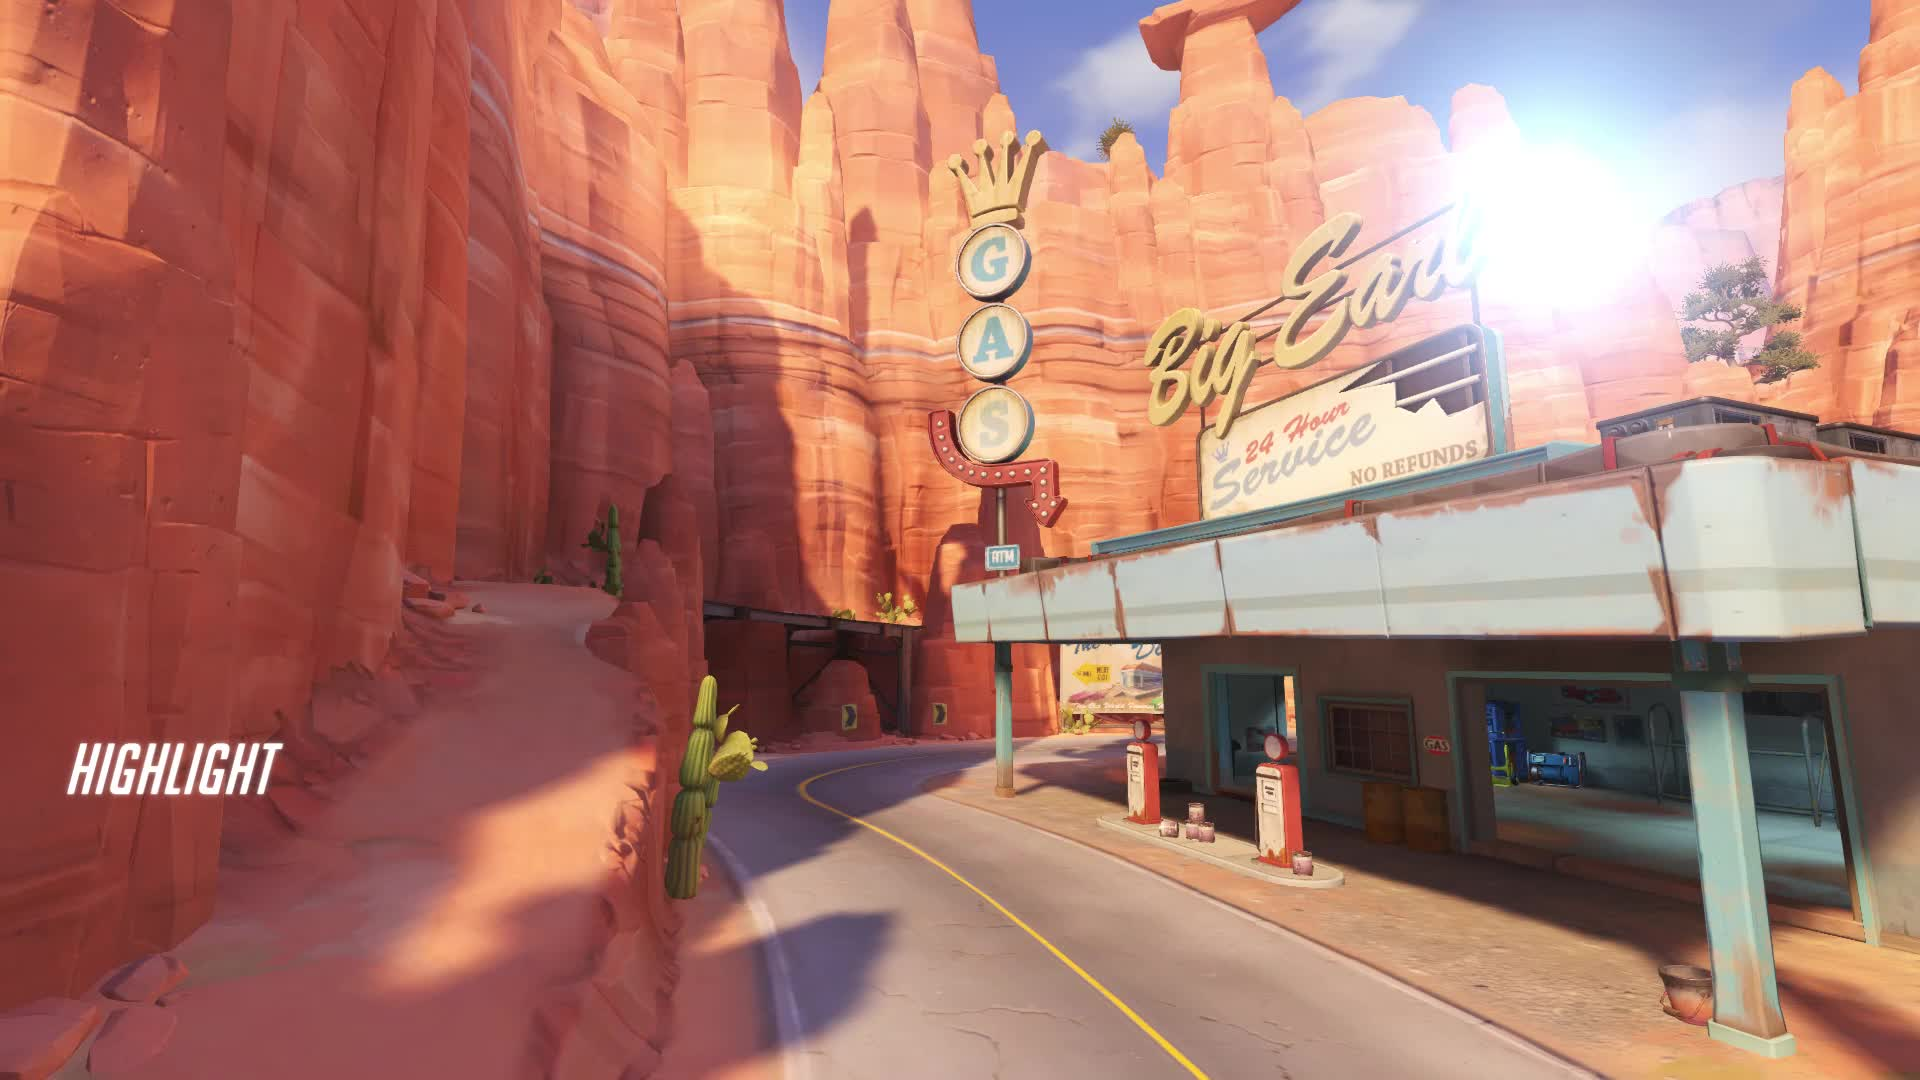 highlight, overwatch, tracer, finish em 18-11-03 23-08-03 GIFs